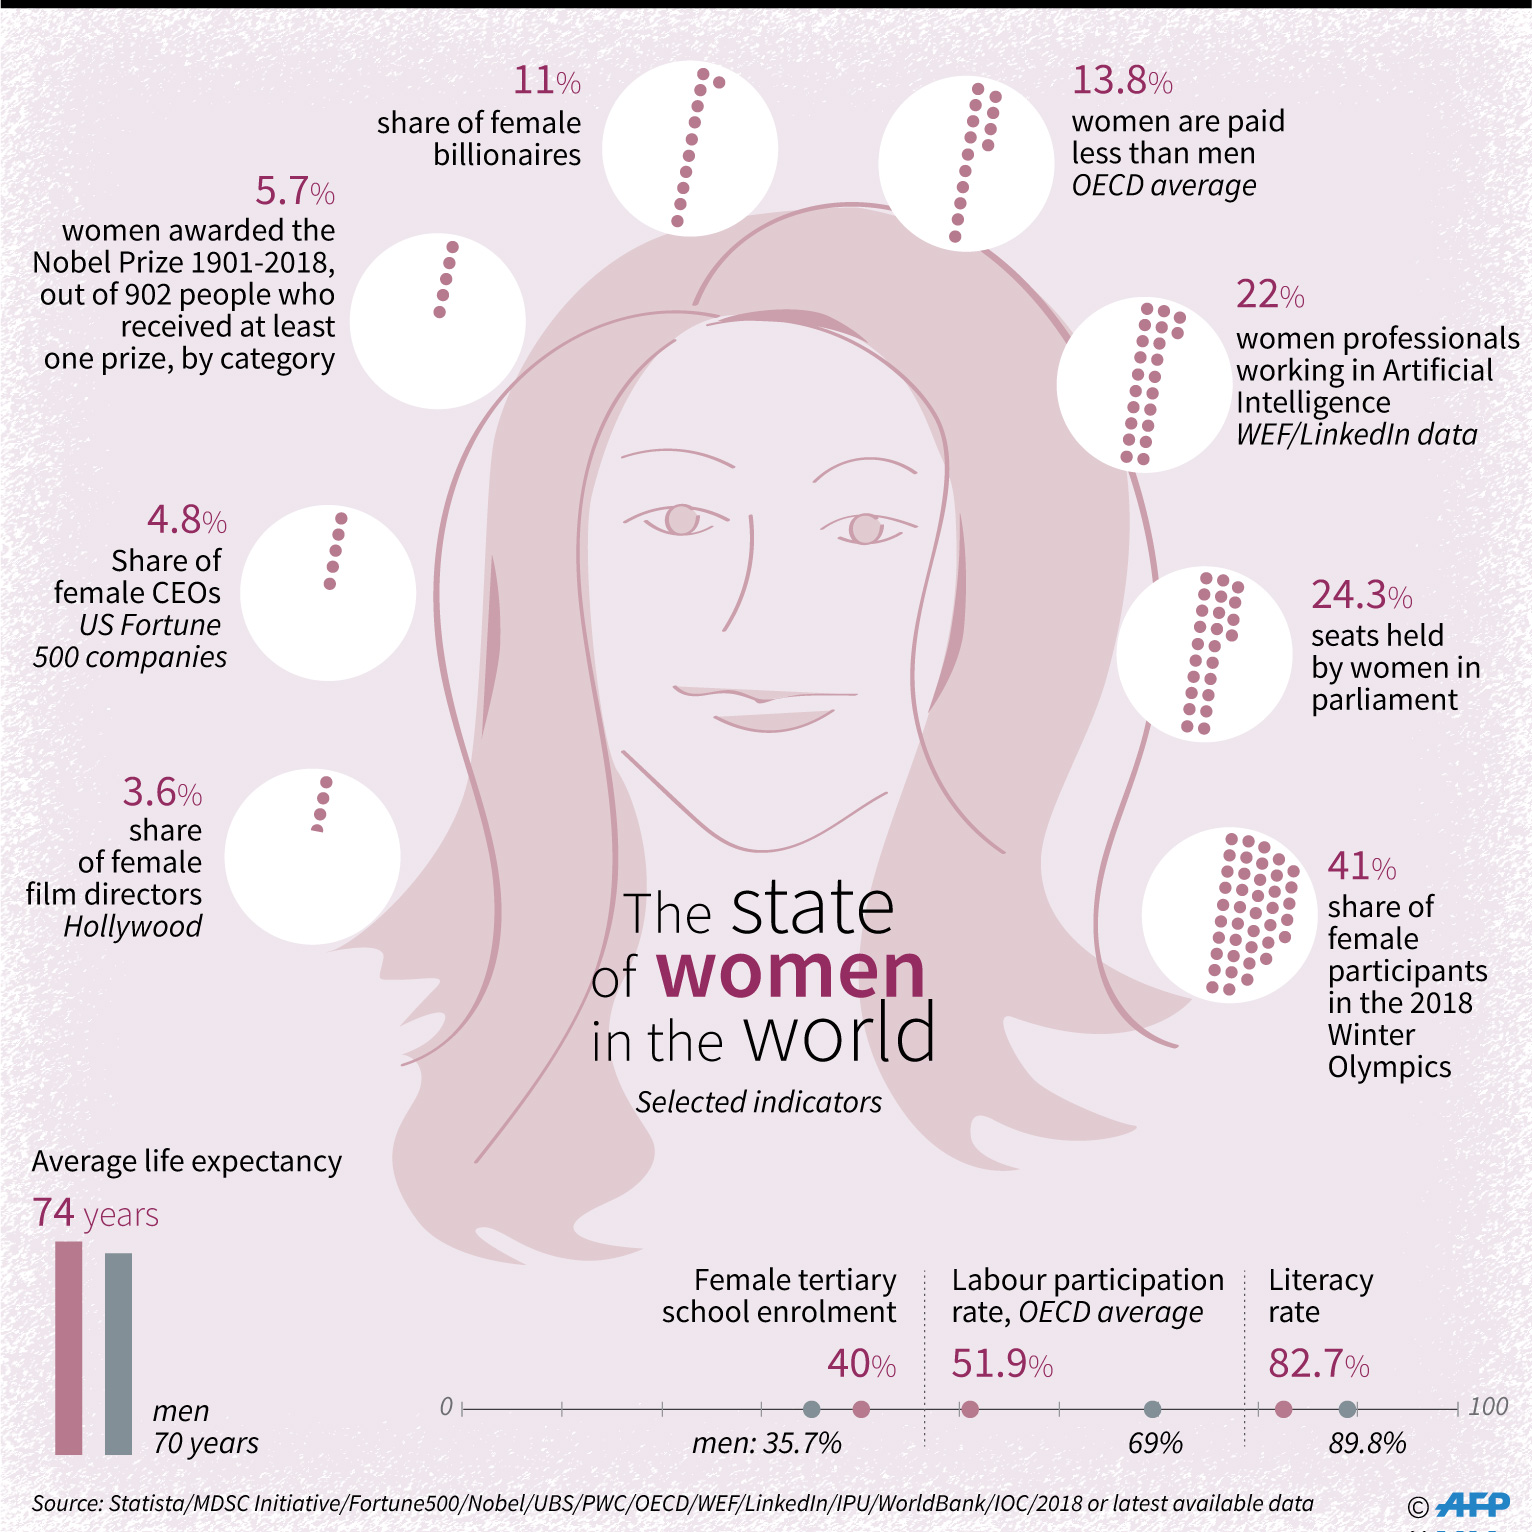 Key indicators on the state of women in the world